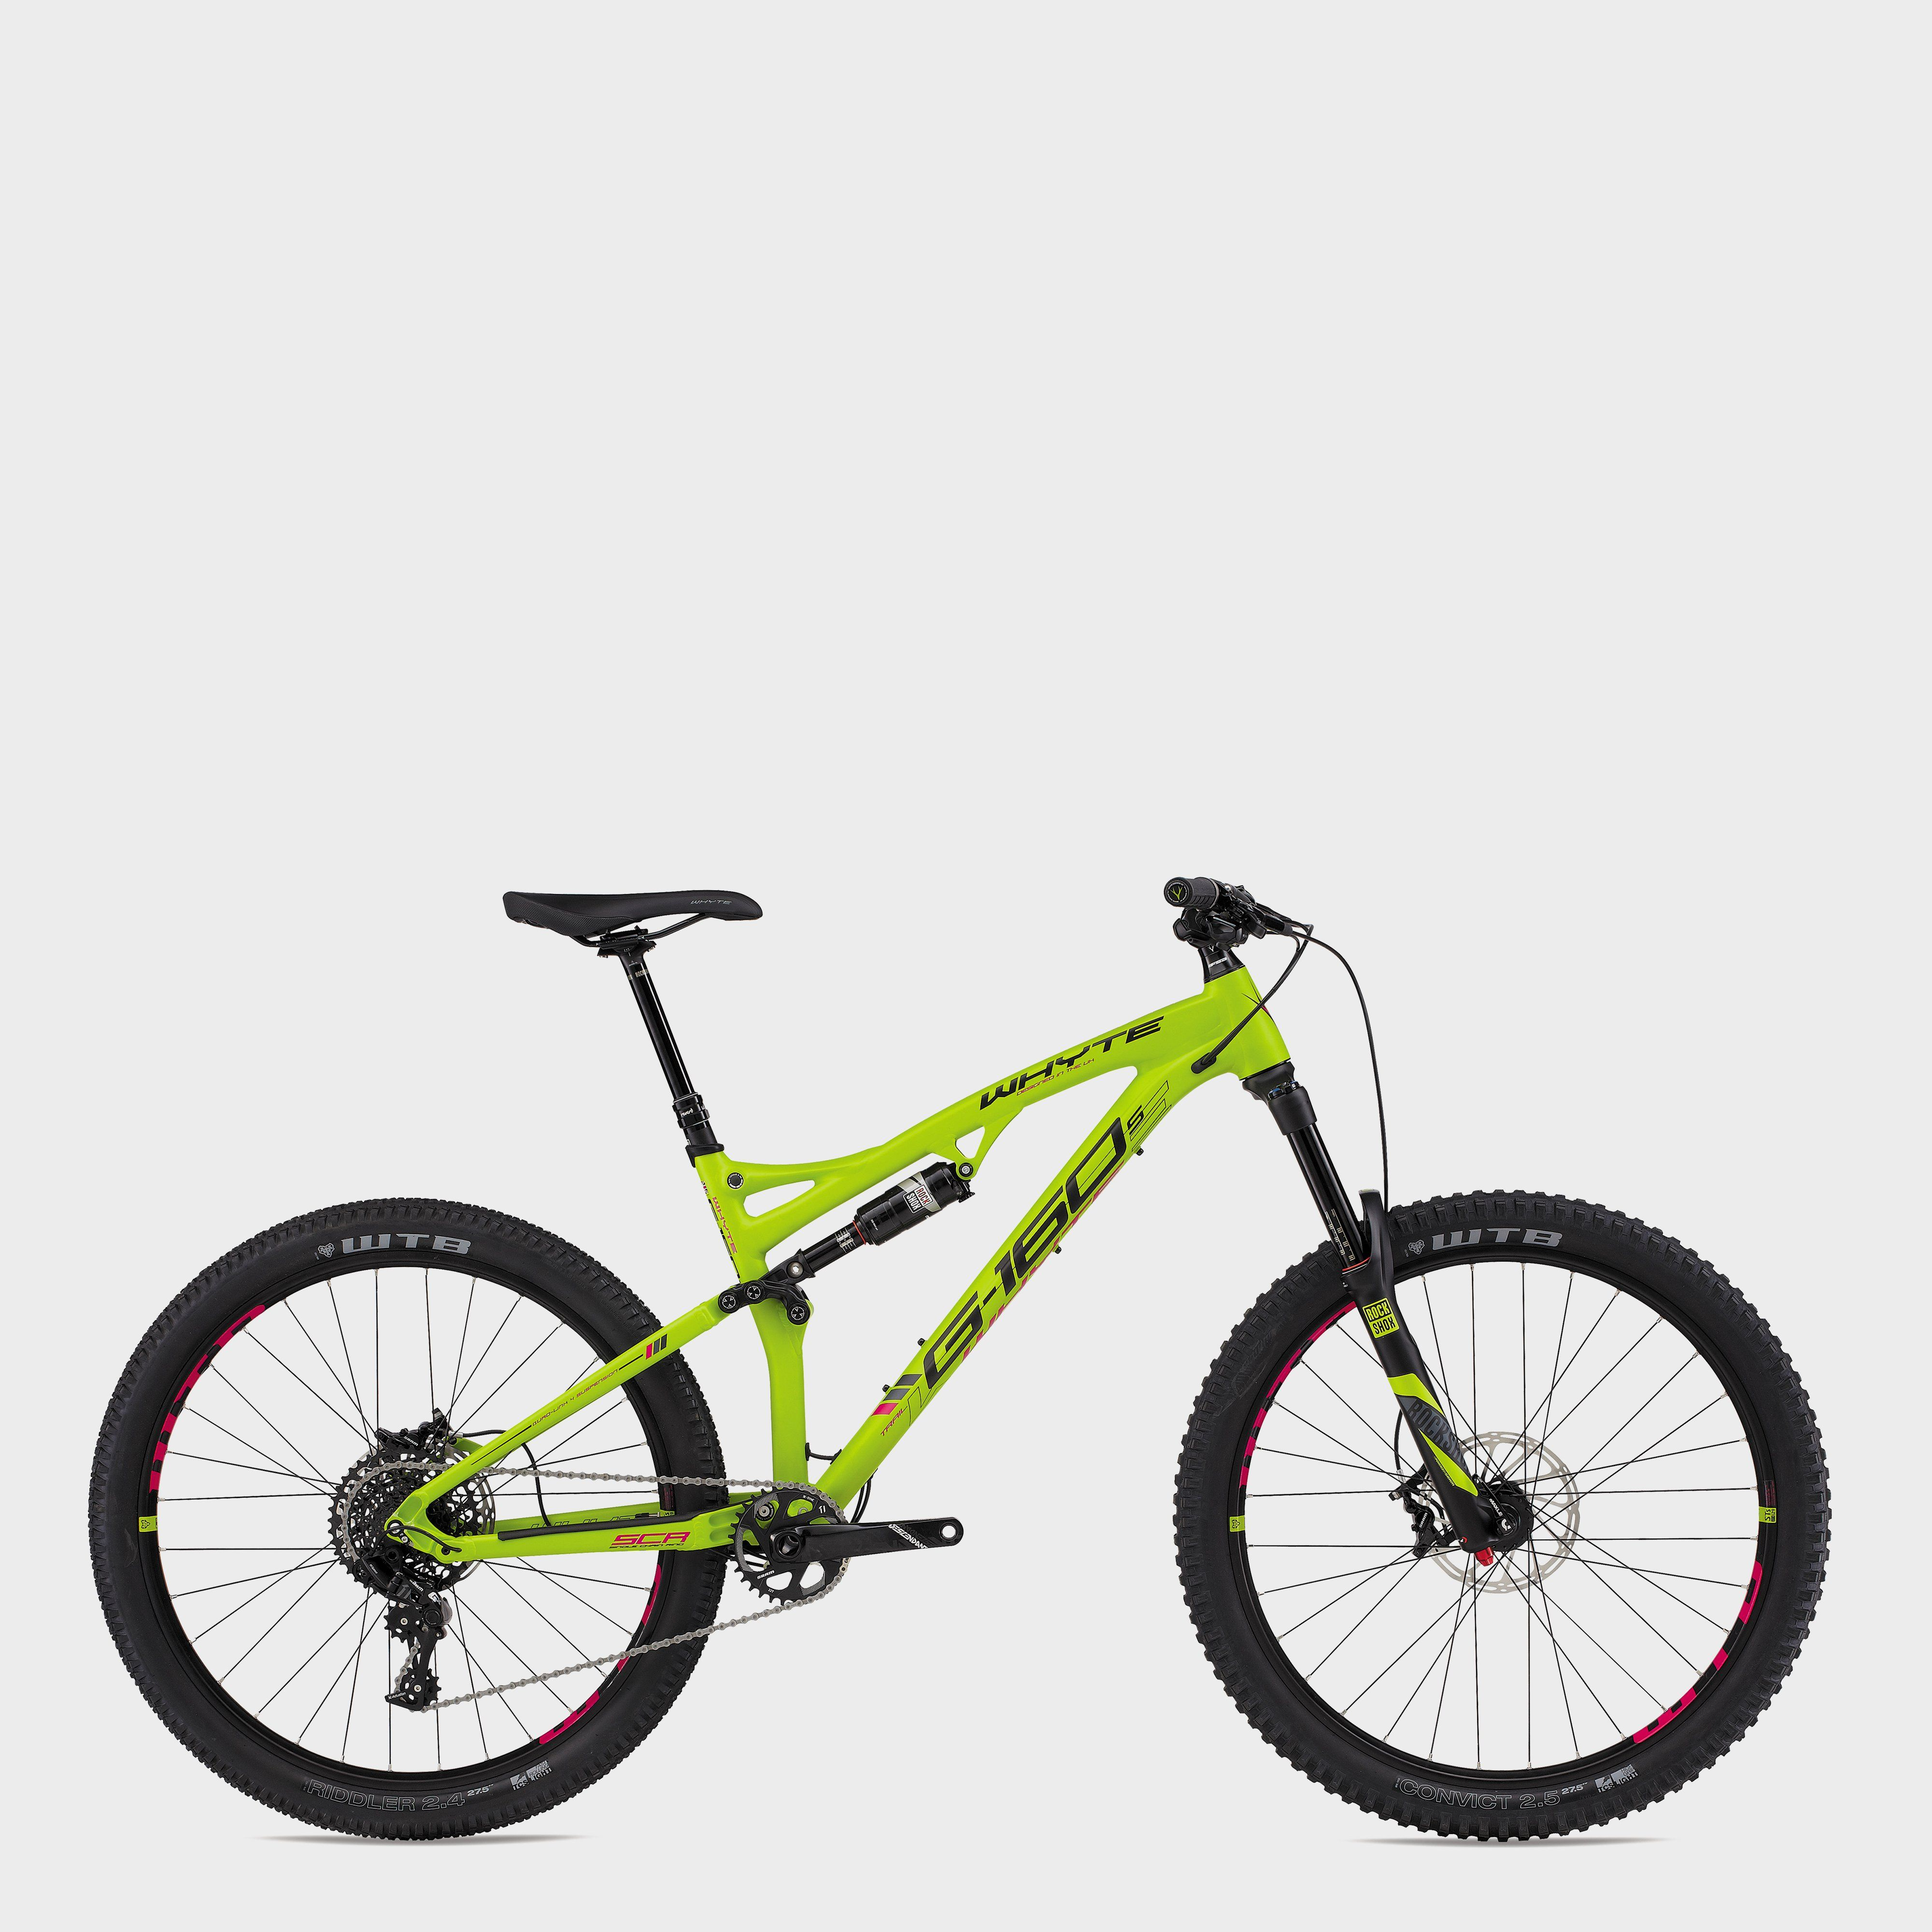 WHYTE BIKES G160S Full Suspension Bike